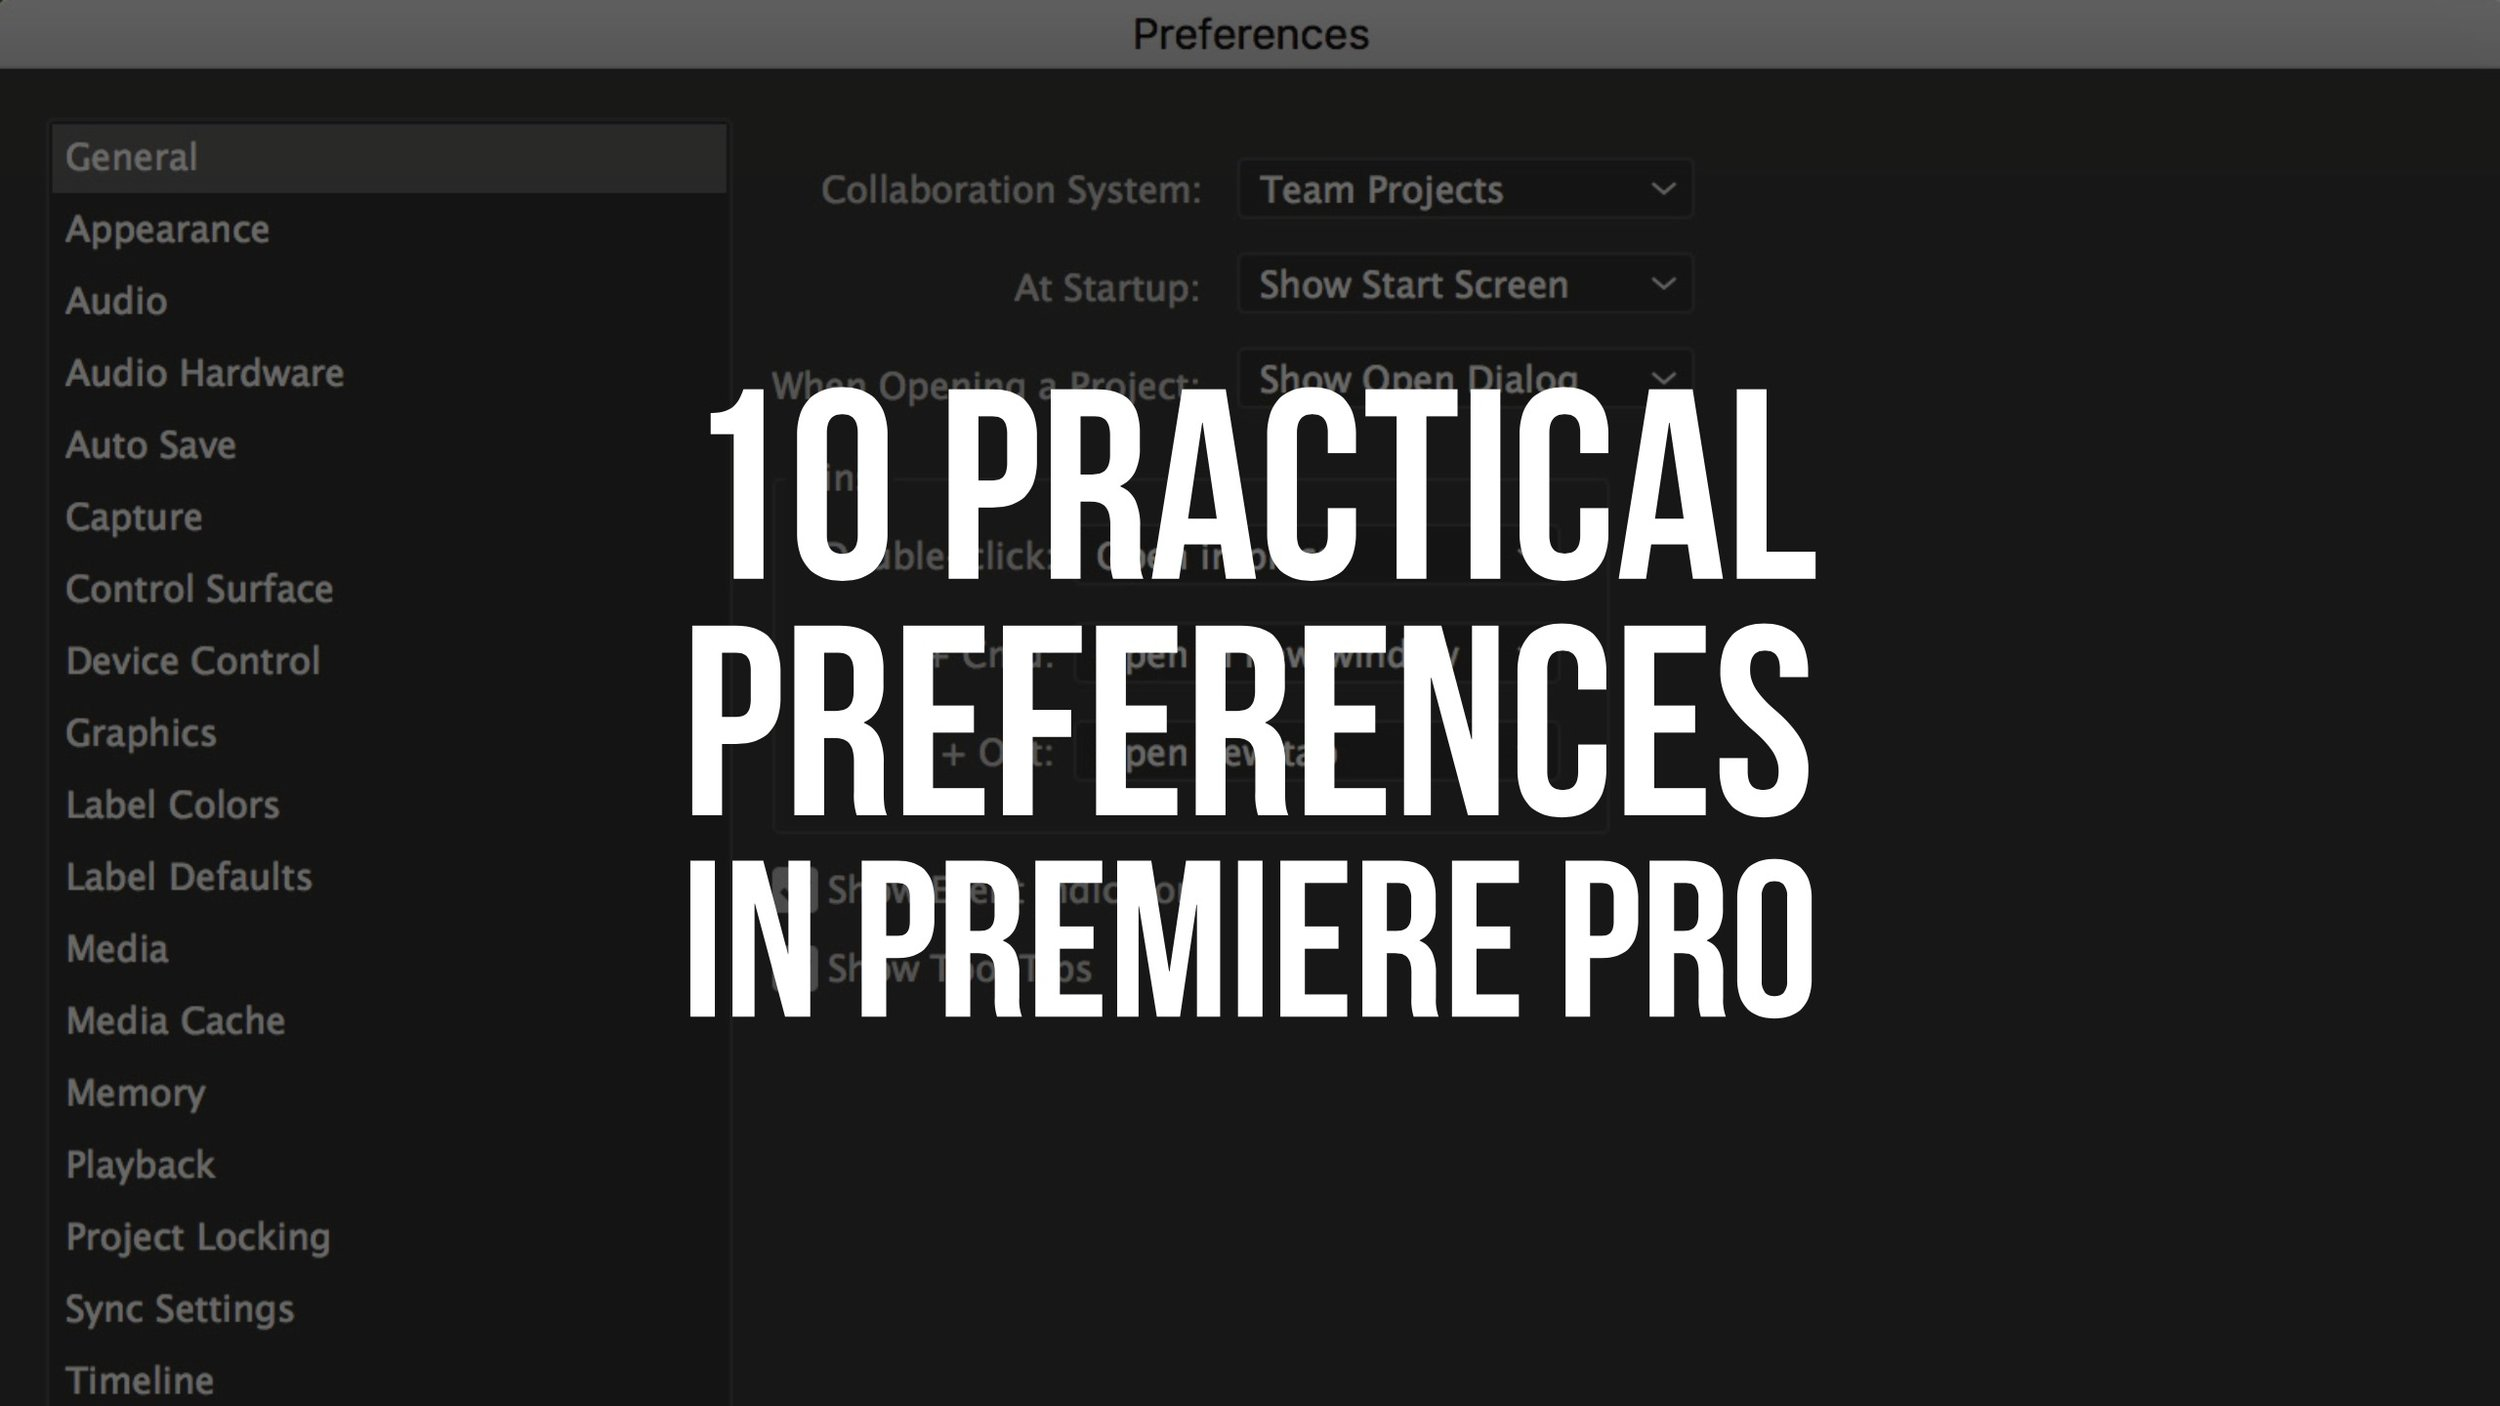 10-practical-preferences-in-premiere-pro